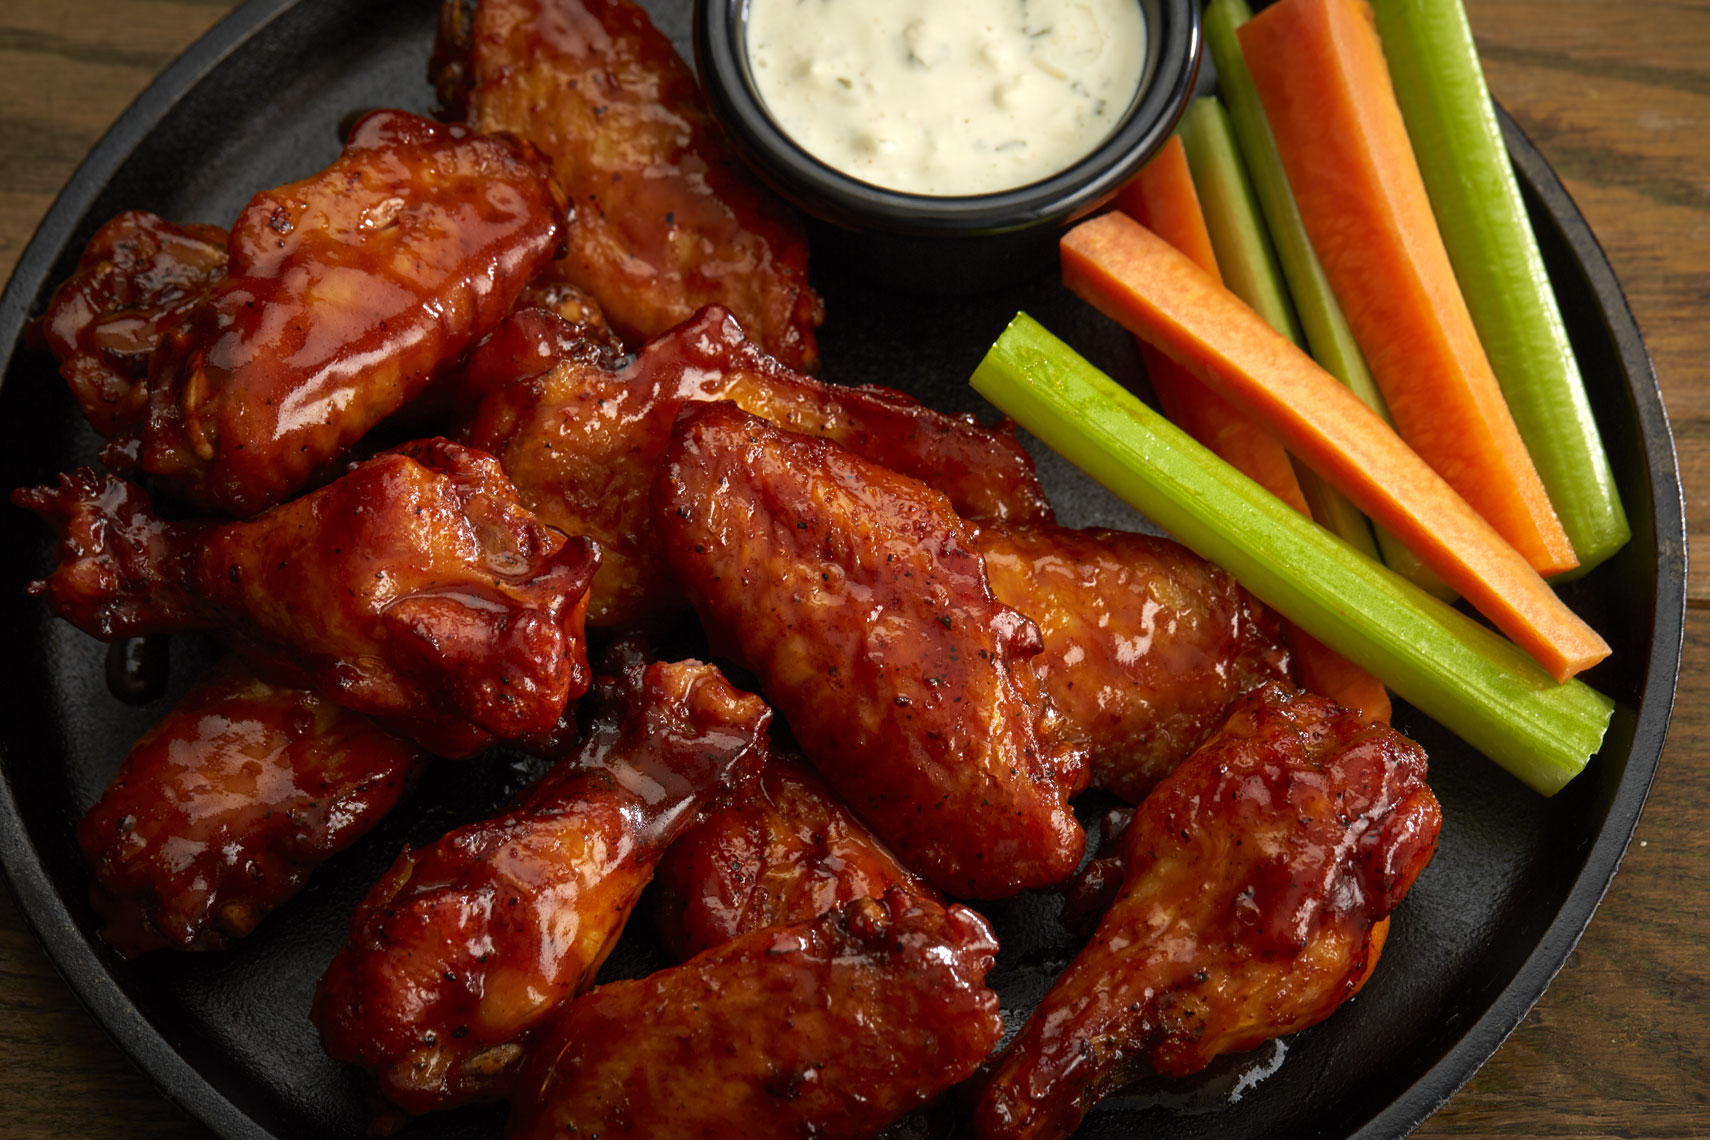 BBQ Chicken Wings/carrots/celery/dip/food photography